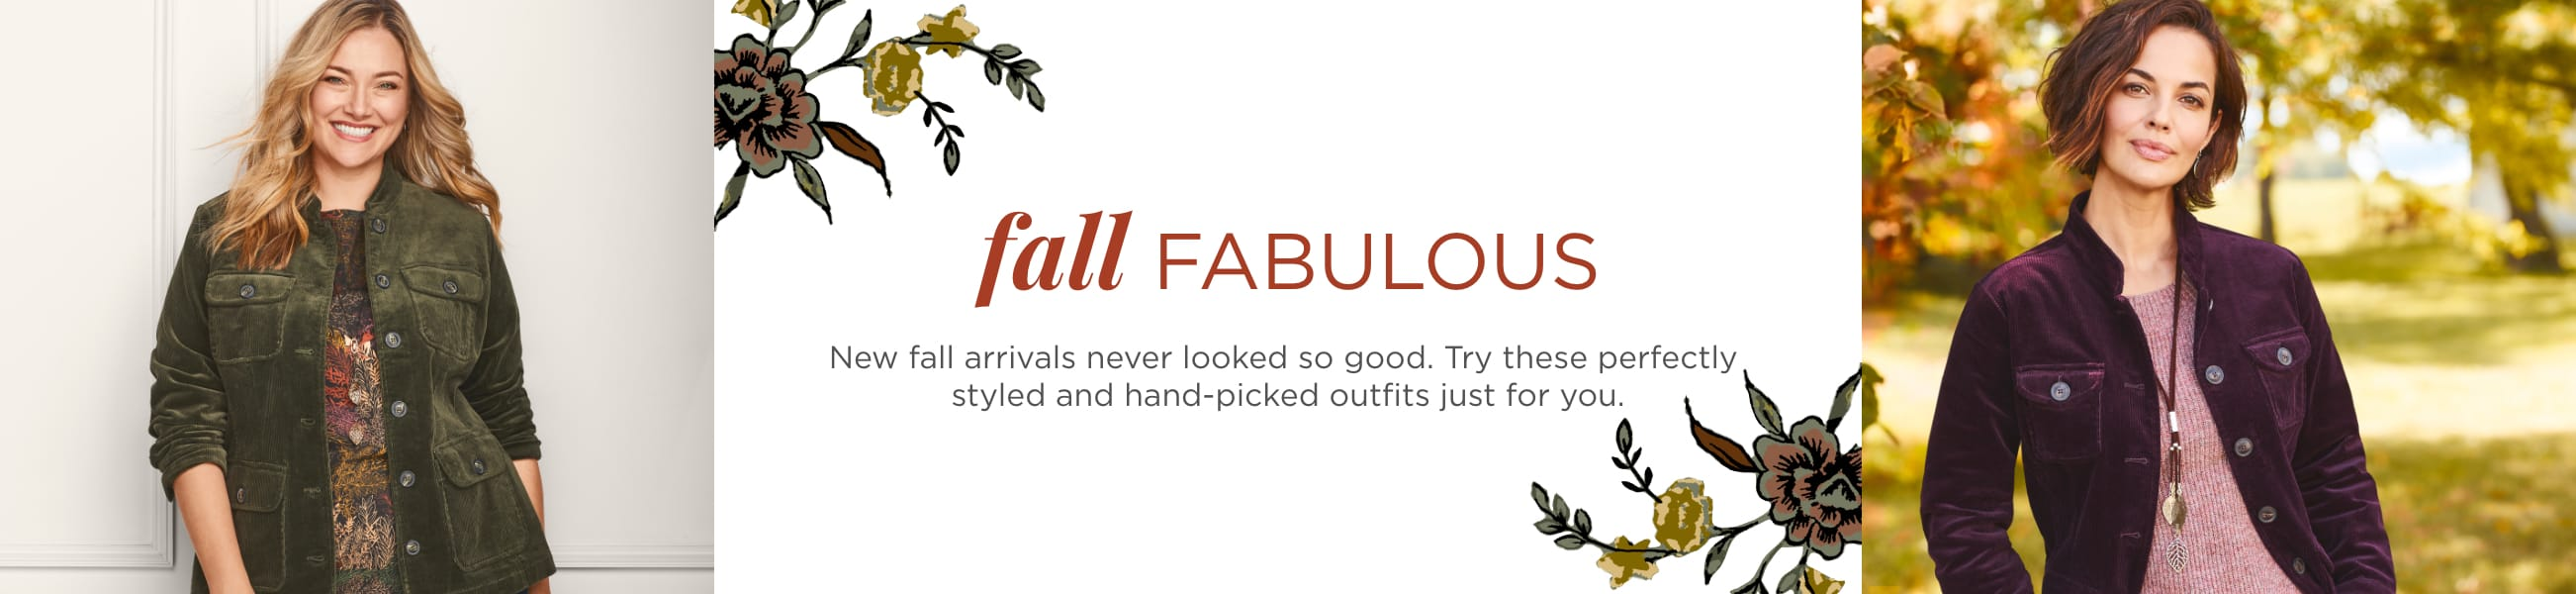 Fall Fabulous! new fall arrivals never looked so good. Try these perfectly styled and hand-picked outfits just for you.